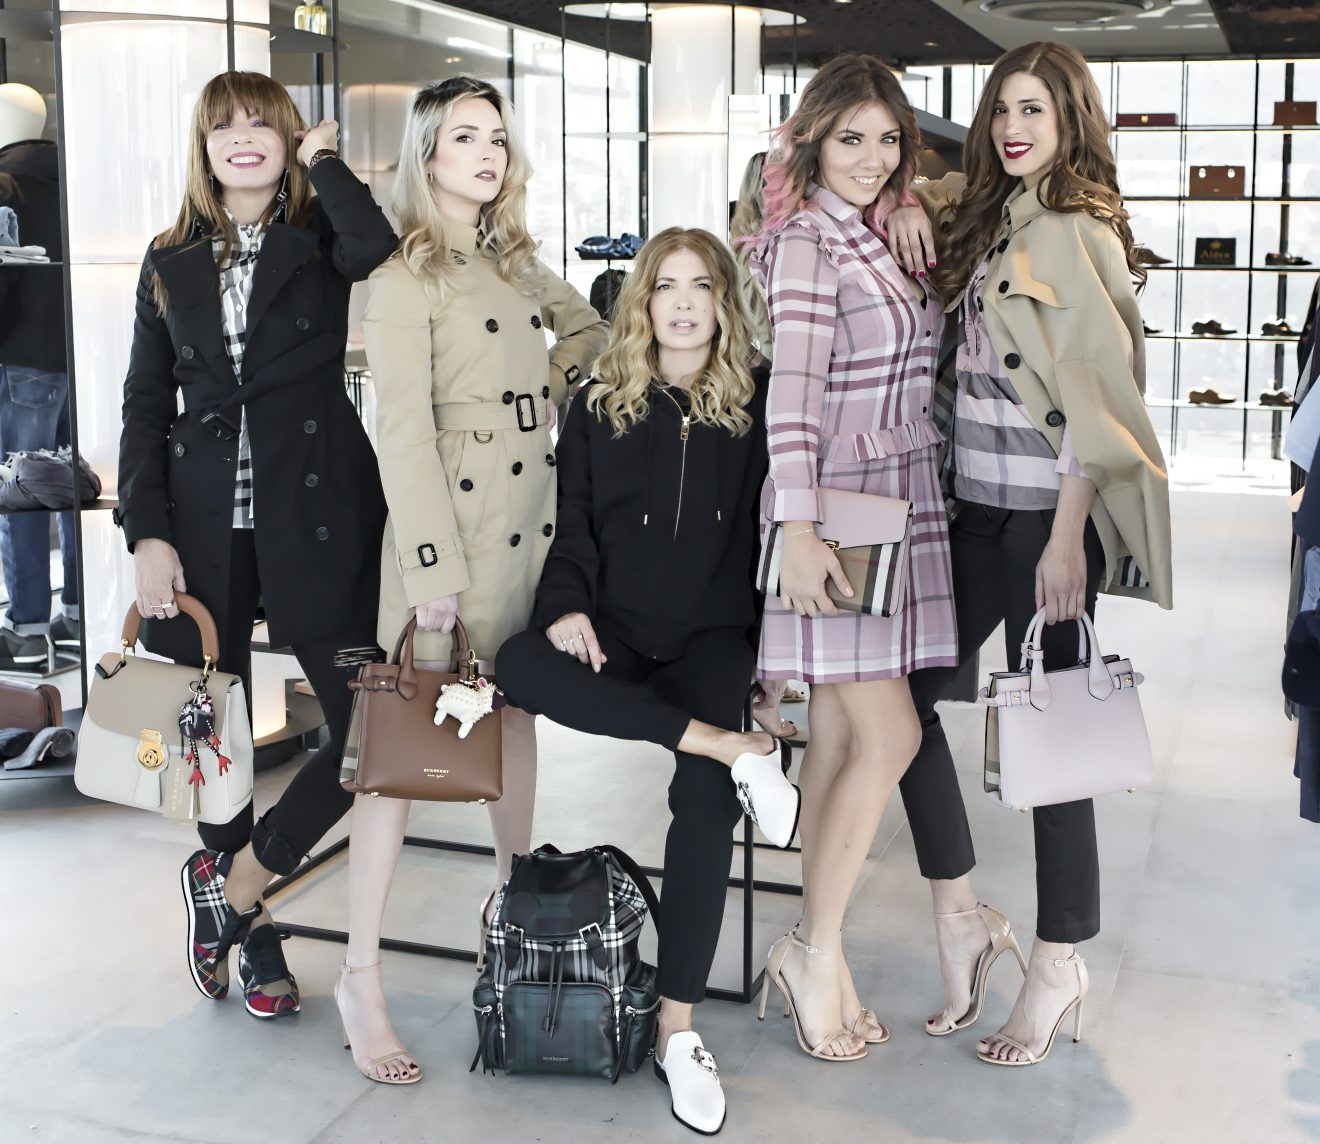 The 5 fashion bloggers posing for a fashion shoot